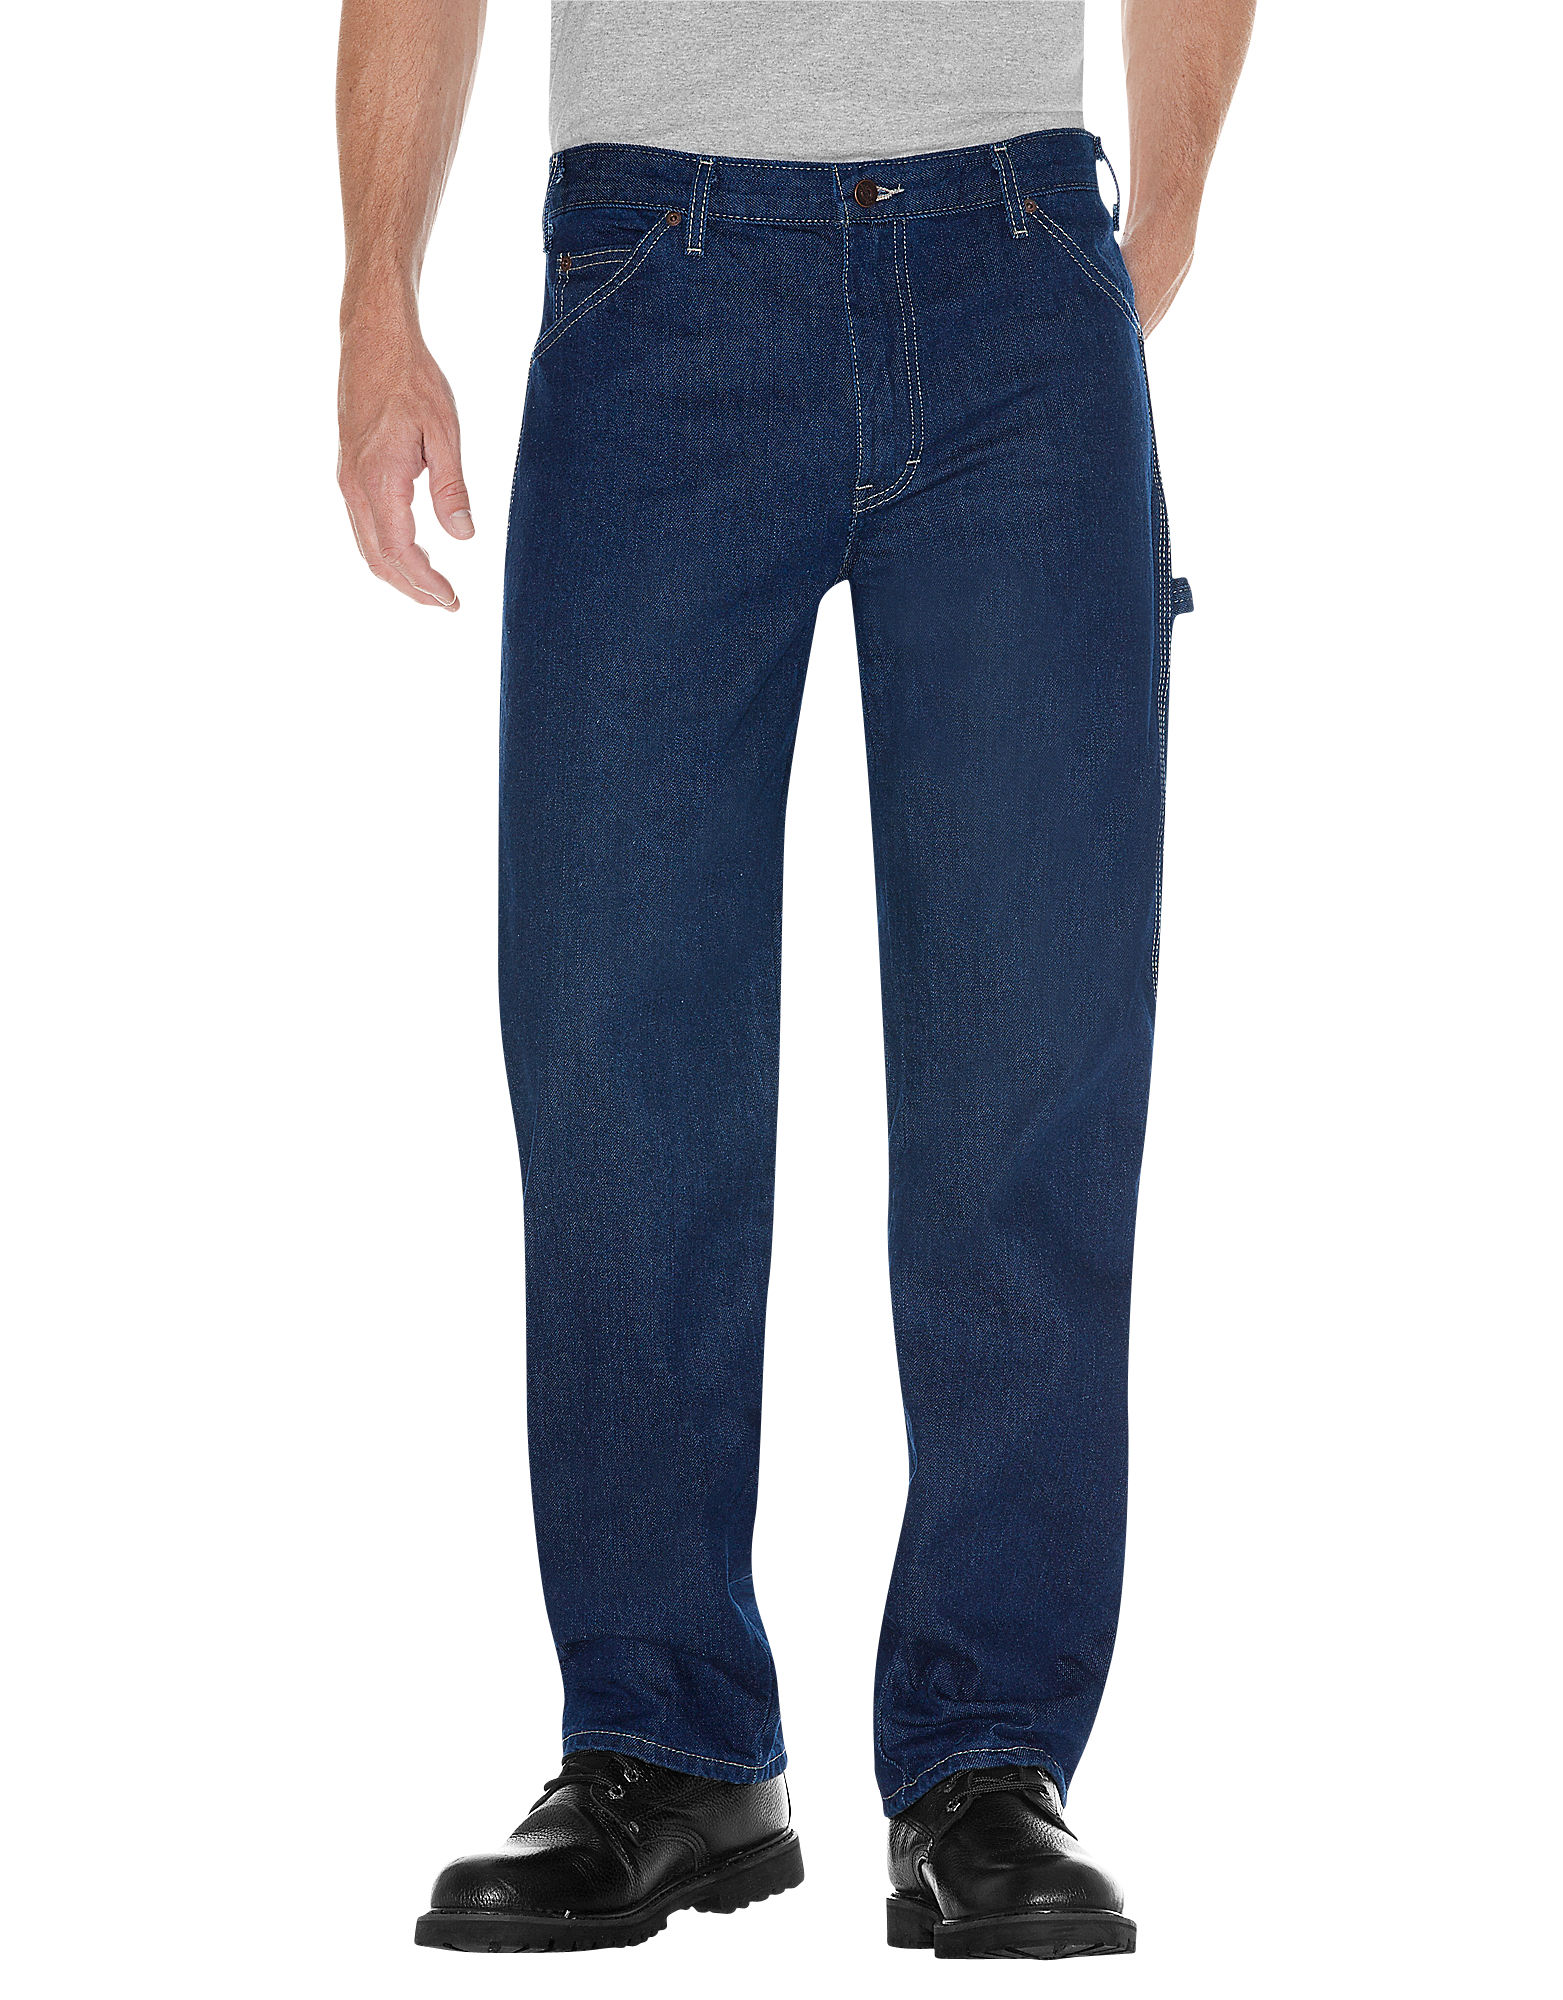 Dickies Mens Relaxed Fit Carpenter Denim Jeans - Stonewashed Indigo Blue - Big & Tall